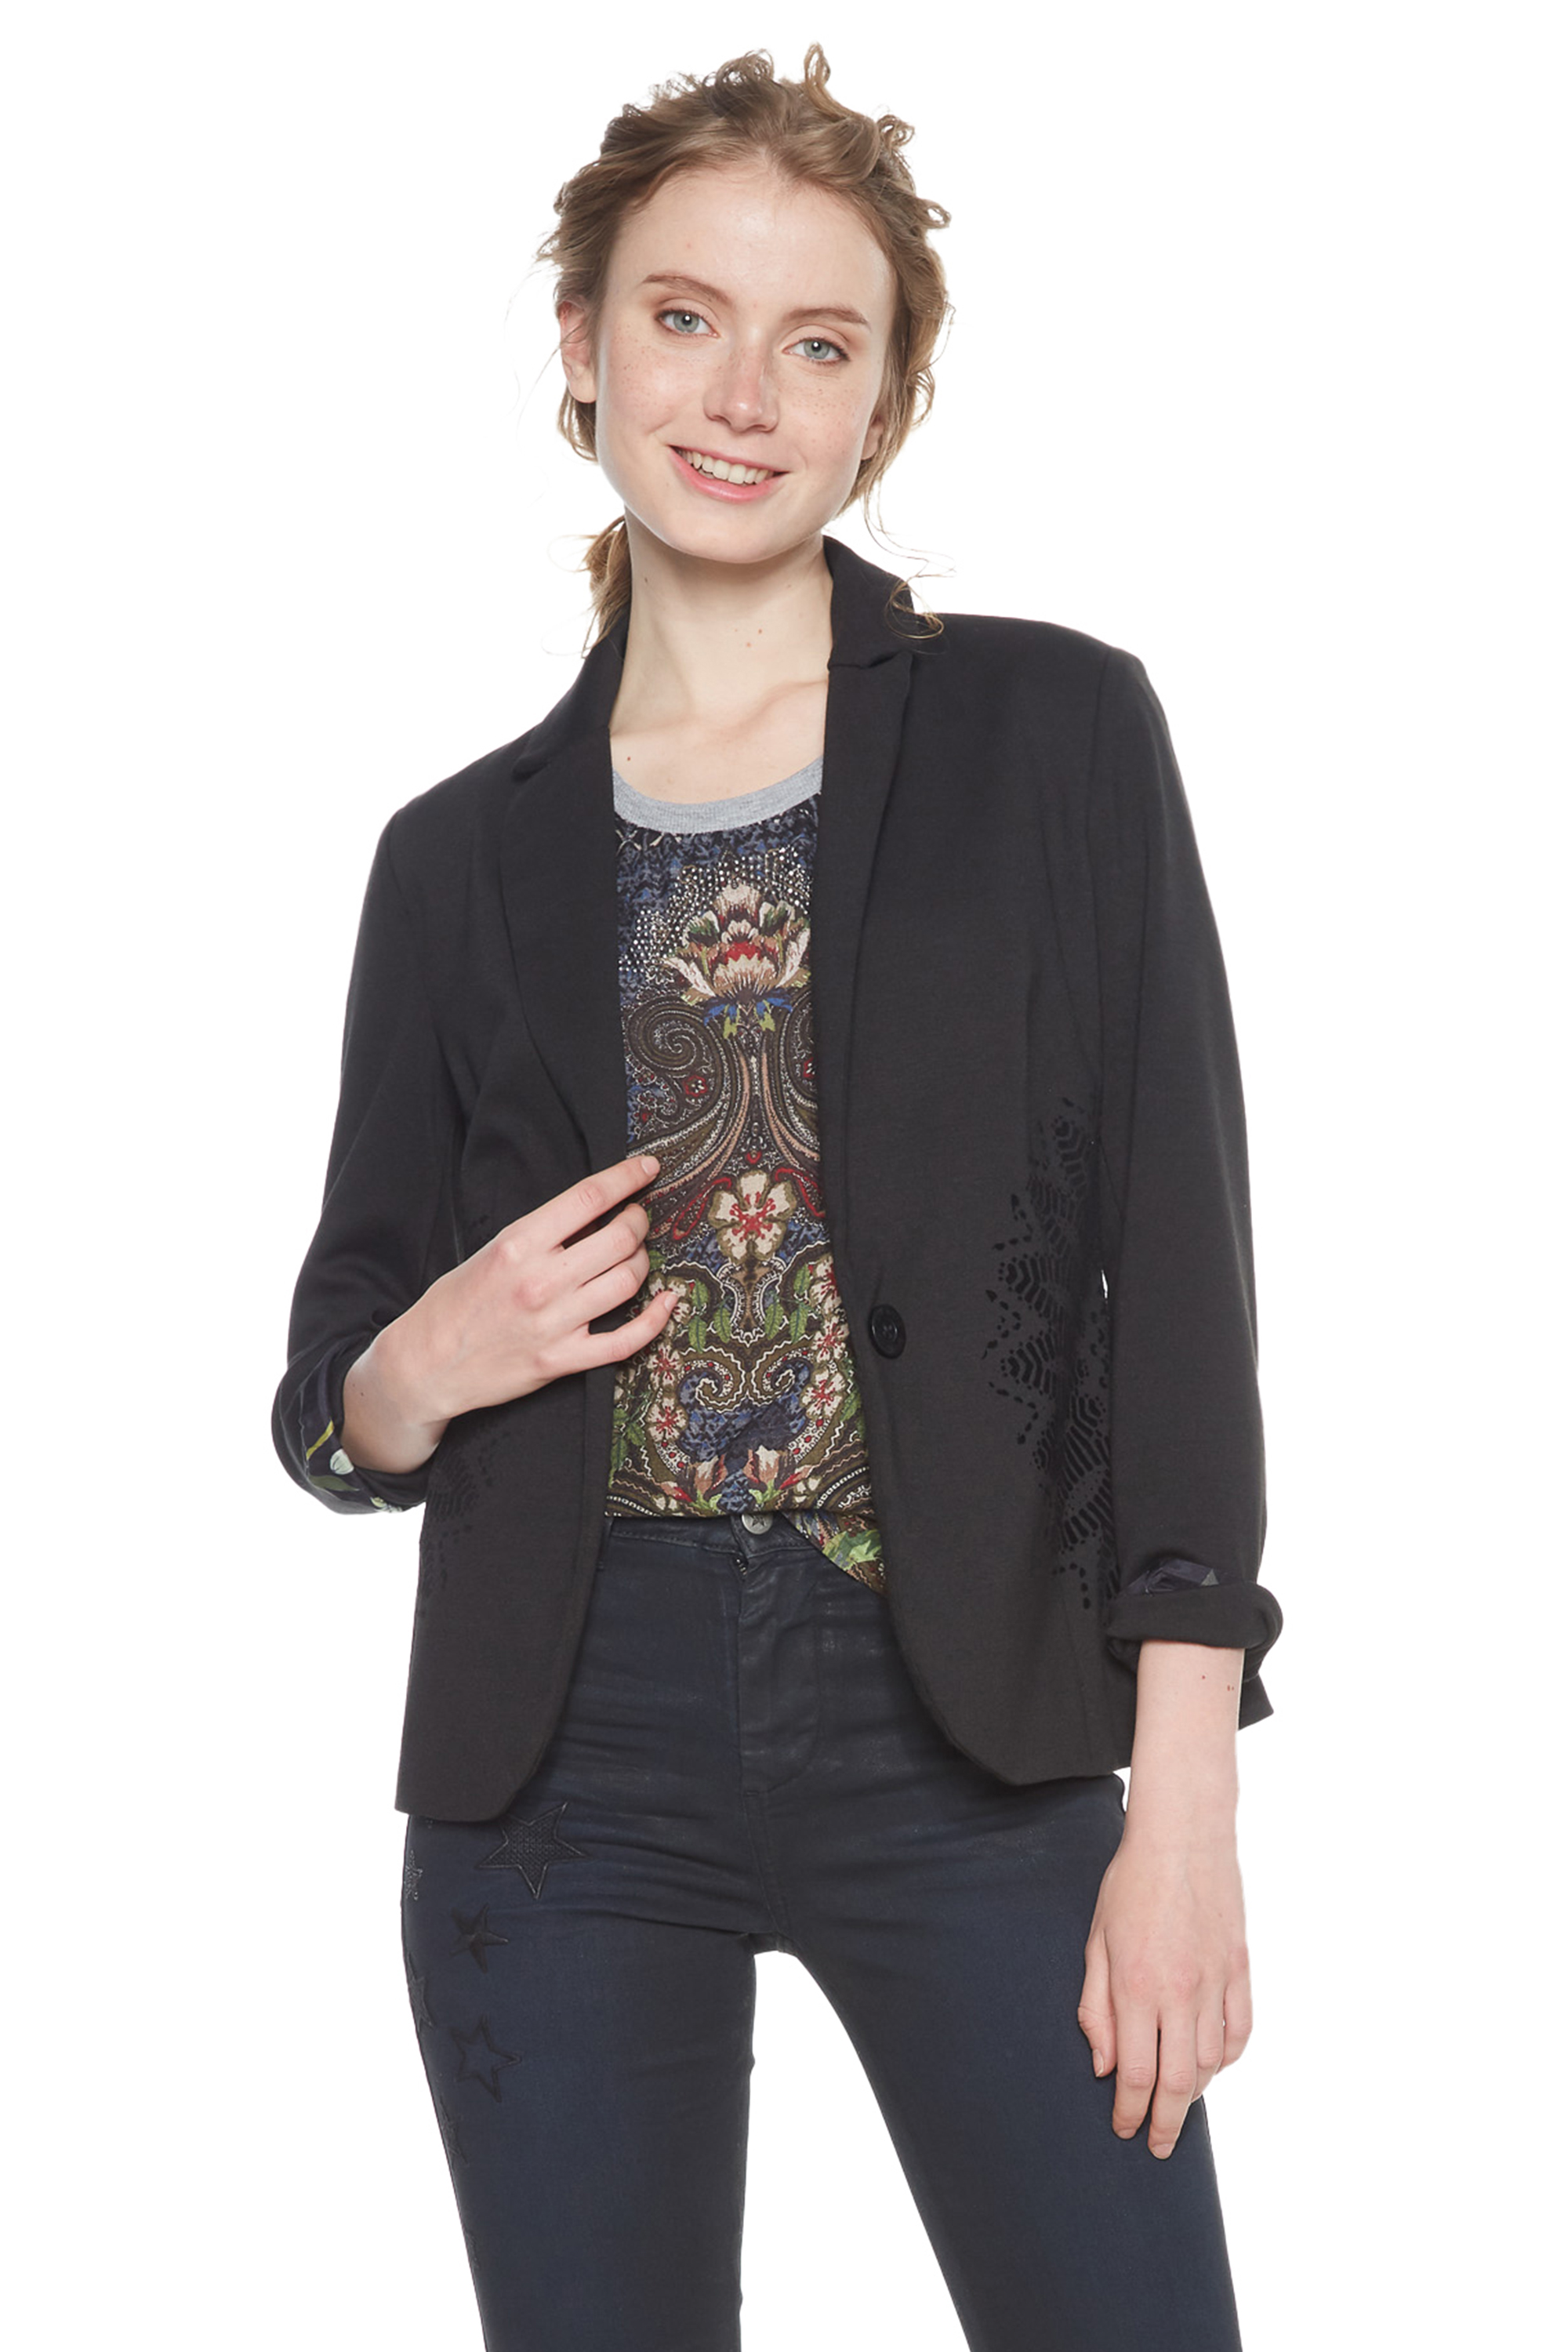 Columbus Black 18 Grey 36 Jacket 46 Mandala Smart Rrp£74 Black Desigual grey Blazer Uk8 Bgqxqpw